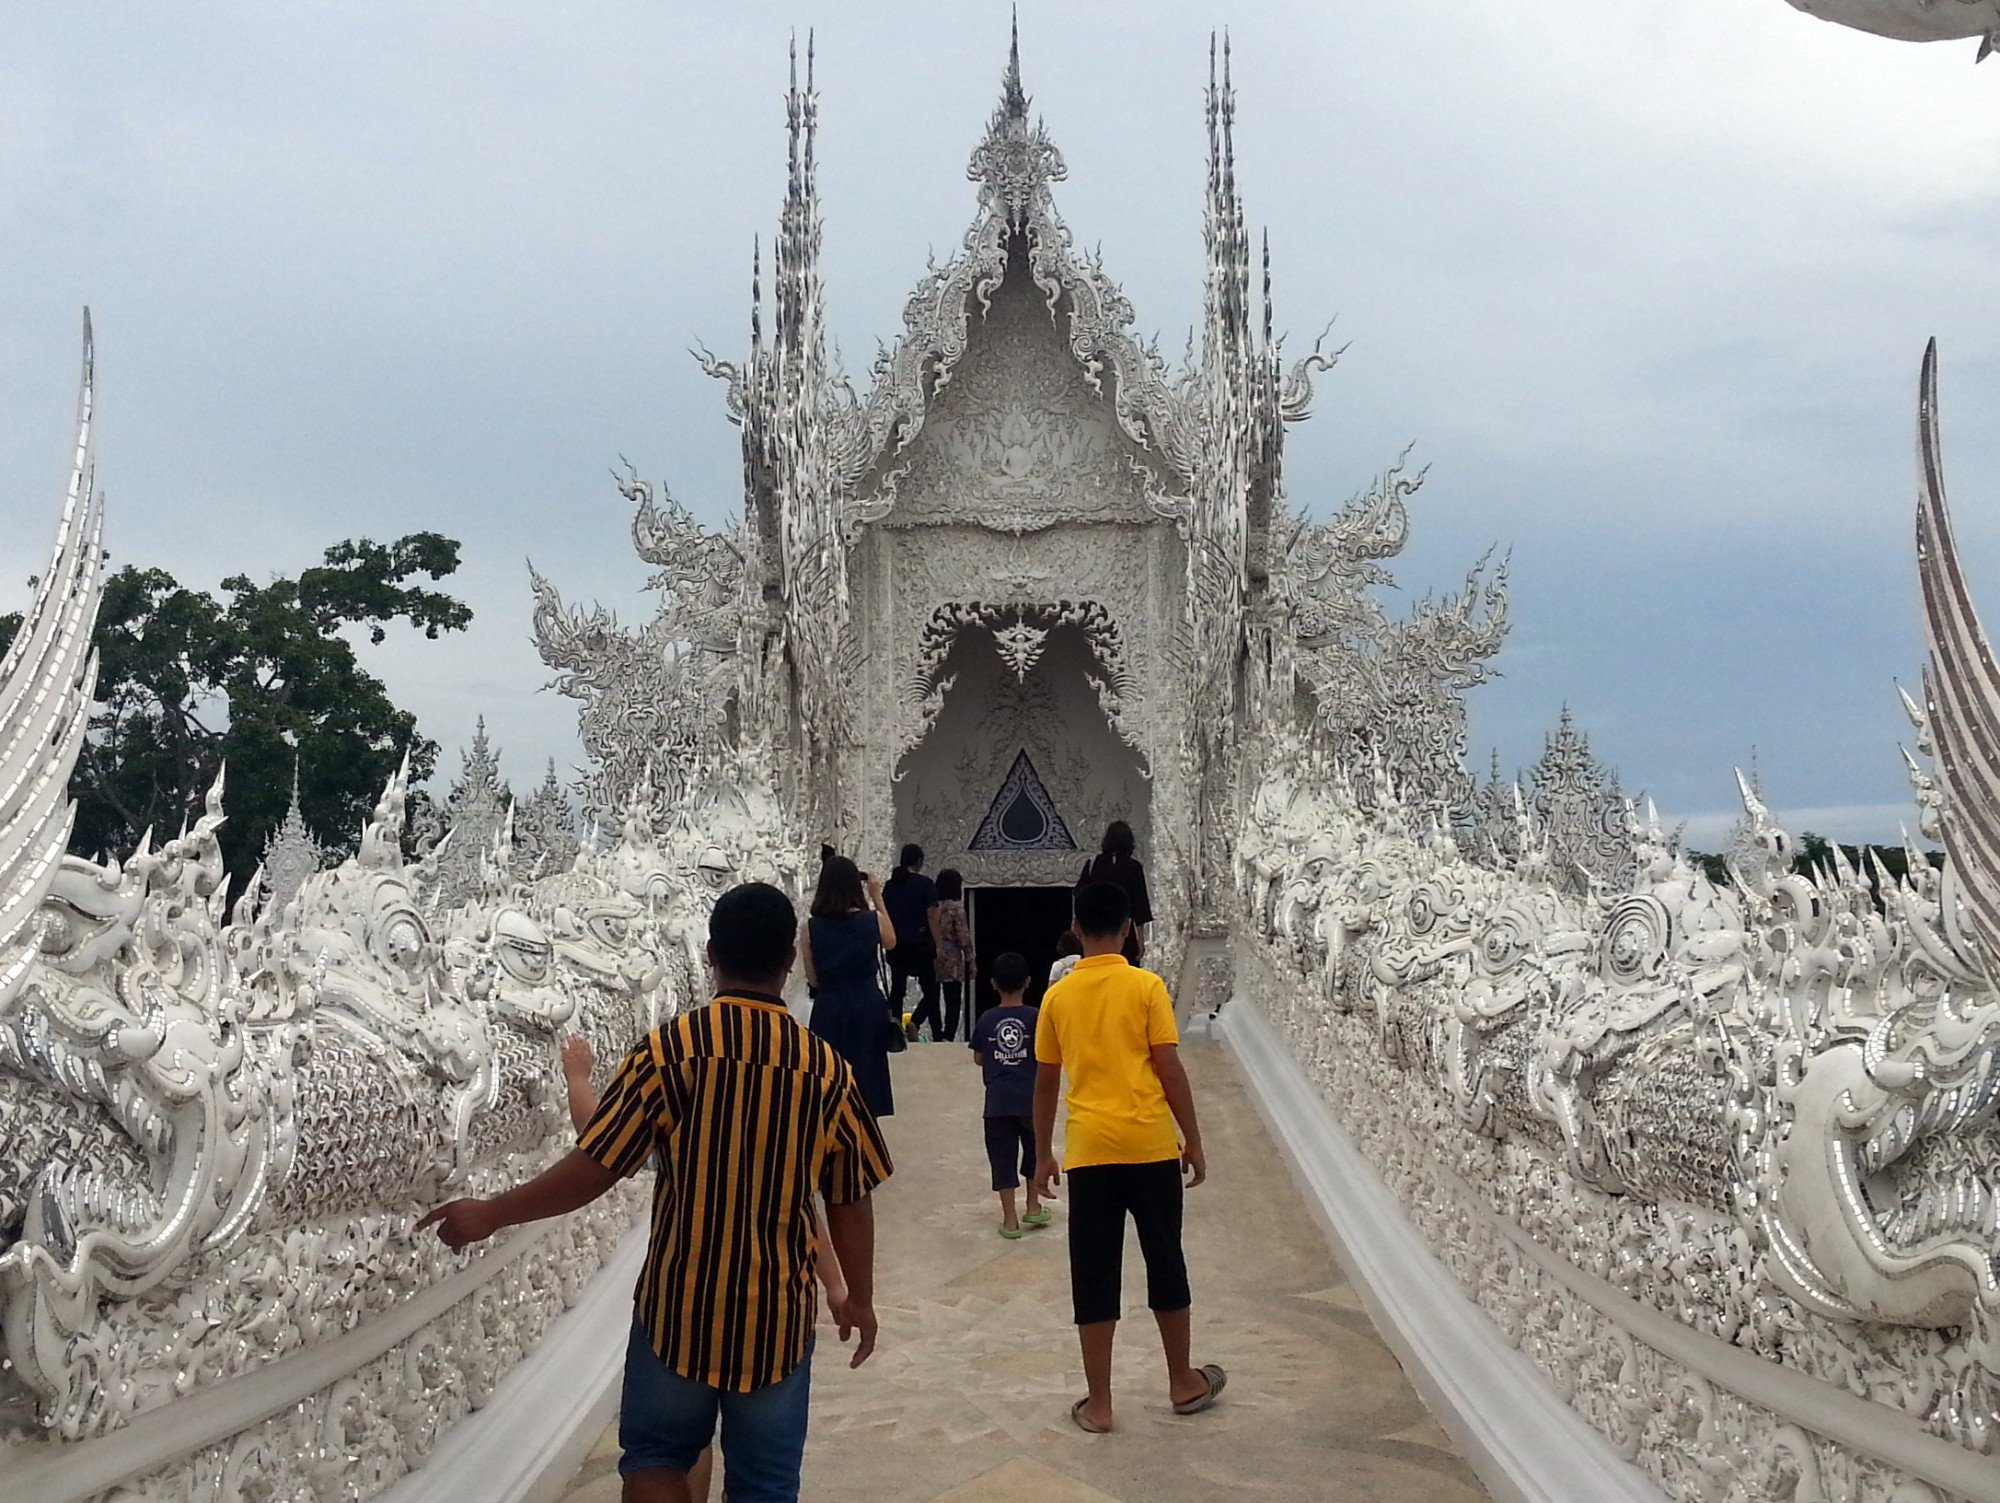 Gate of Heaven at the White Temple